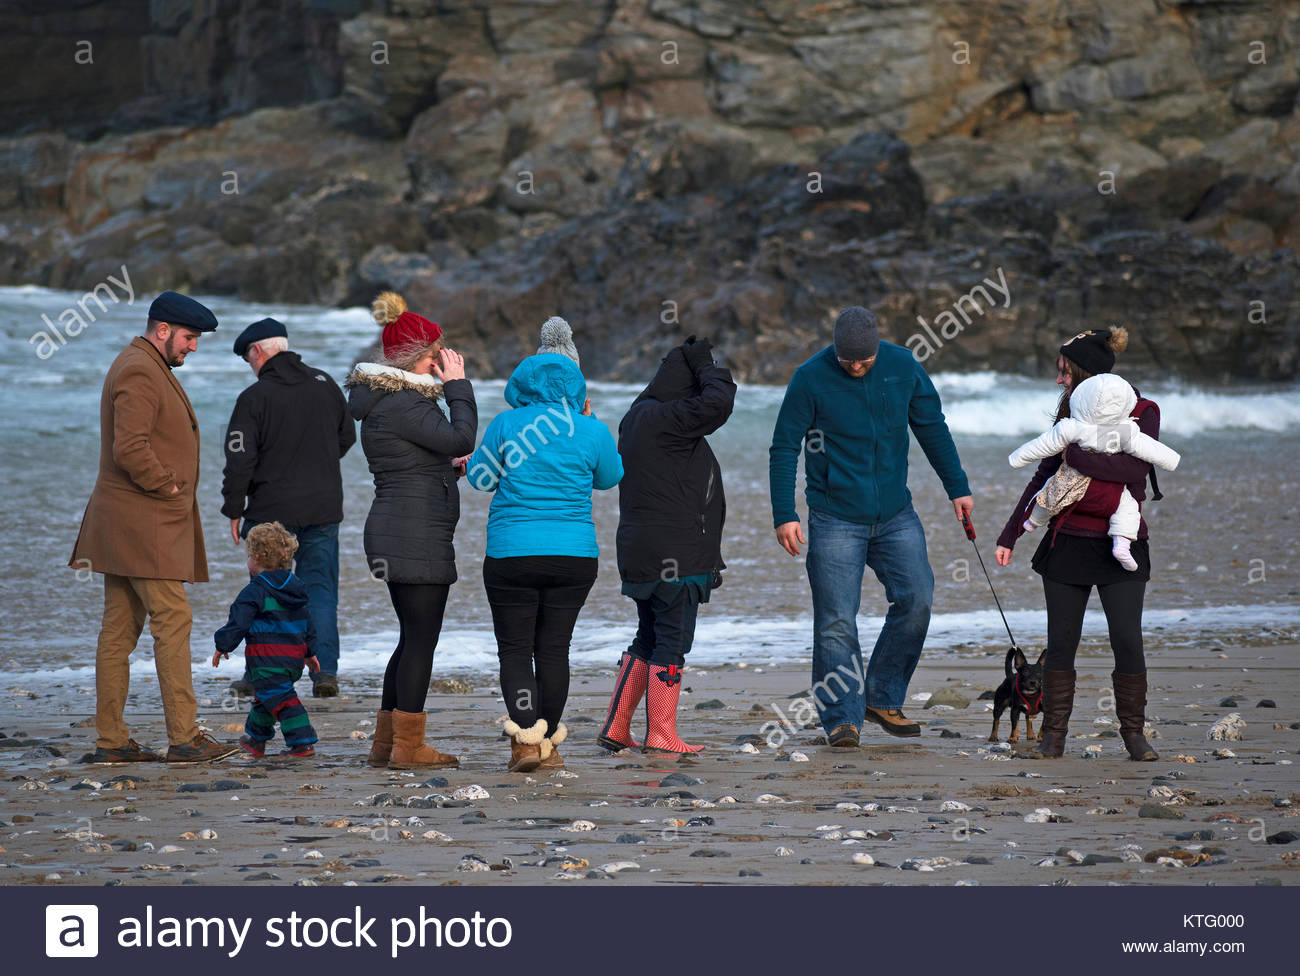 Porthtowan, Cornwall, UK. Christmas Day 25th December 2017. Family take a bracing pre lunch walk on the beach at - Stock Image